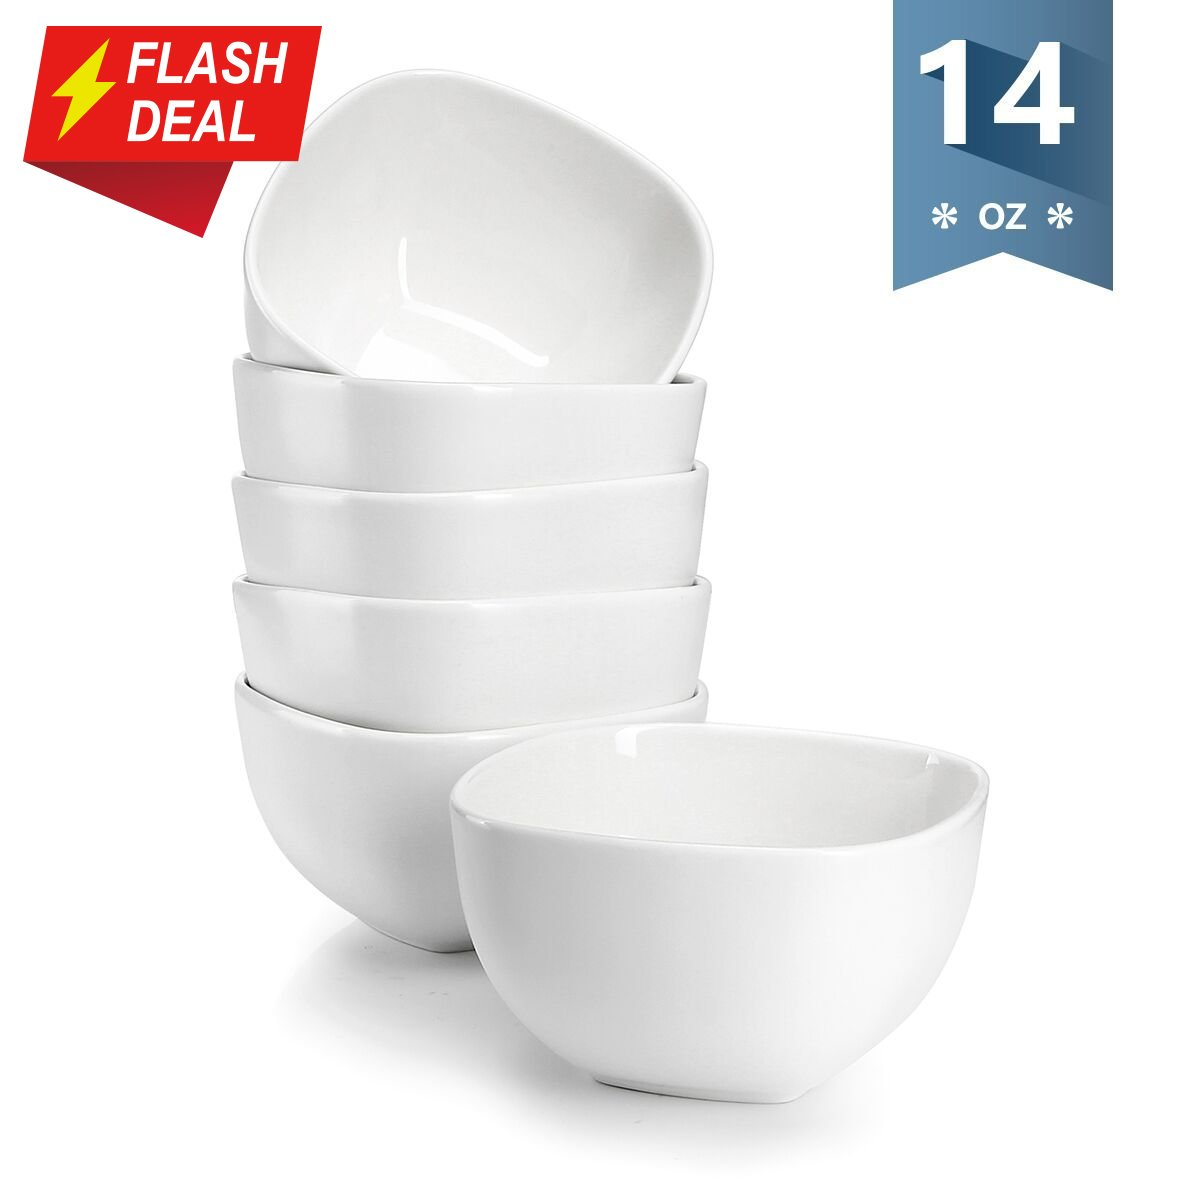 Sweese 1303 Porcelain Square Bowl Set - 14 Ounce Deep and Microwavable for Cereal, Soup and Fruit - Set of 6, Matte White